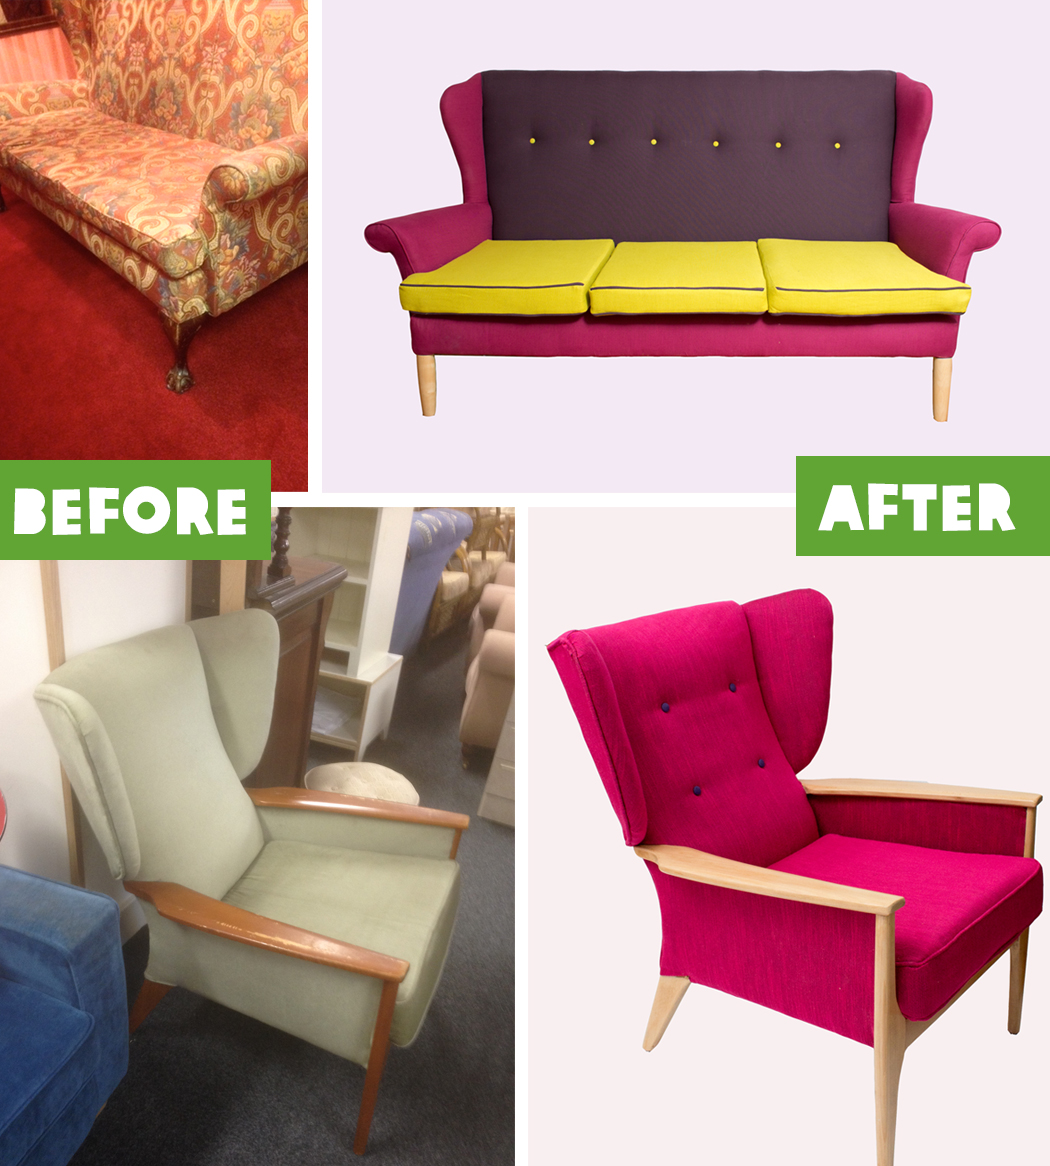 Upcycling projects from oxfam home for Sofa upcycling